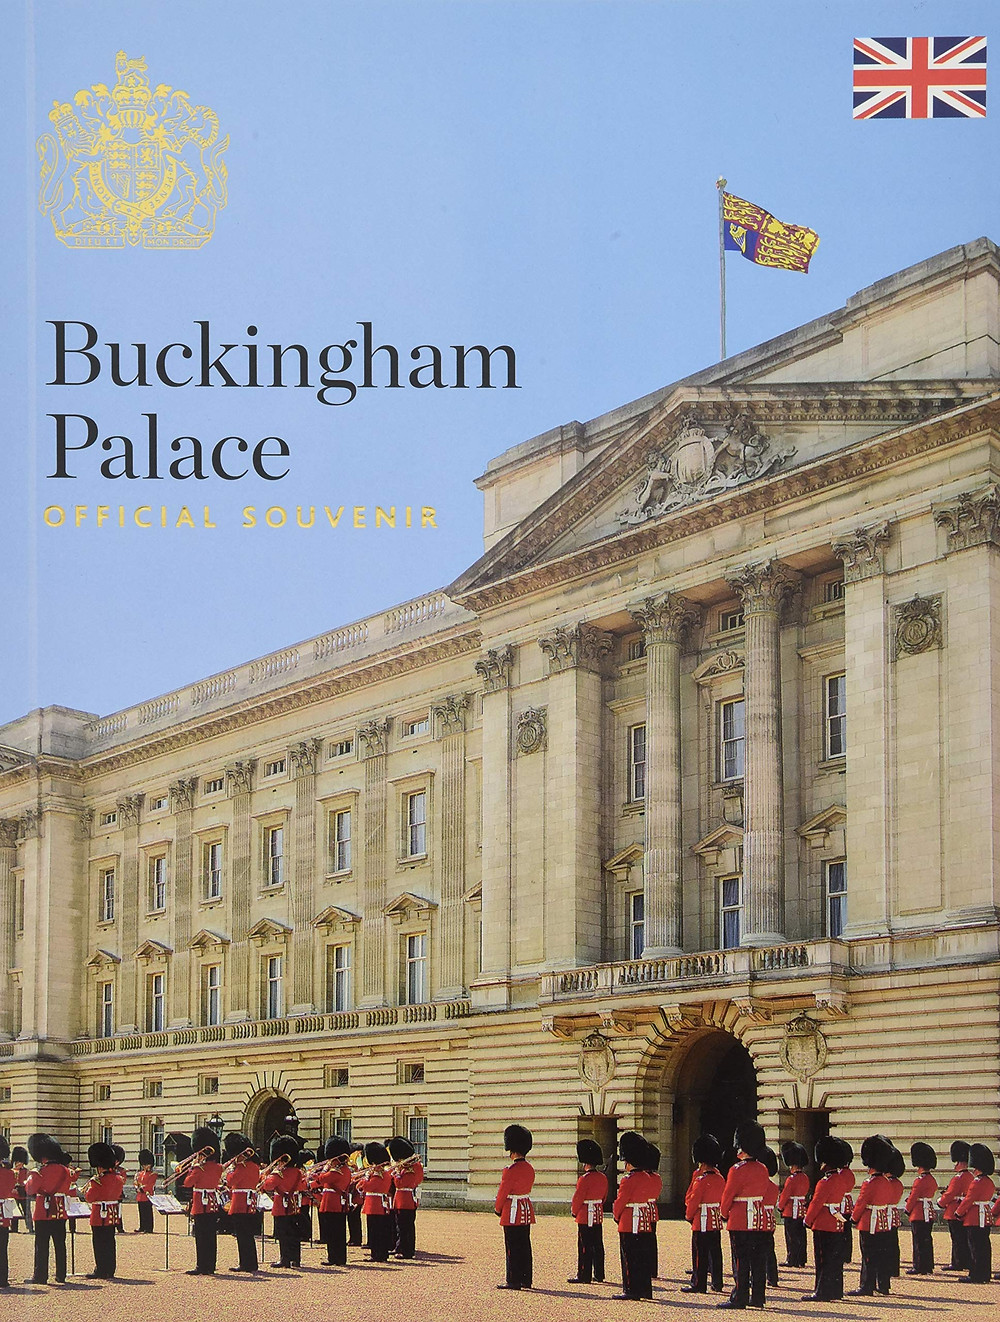 Official Buckingham Palace Guidebook with FREE worldwide delivery